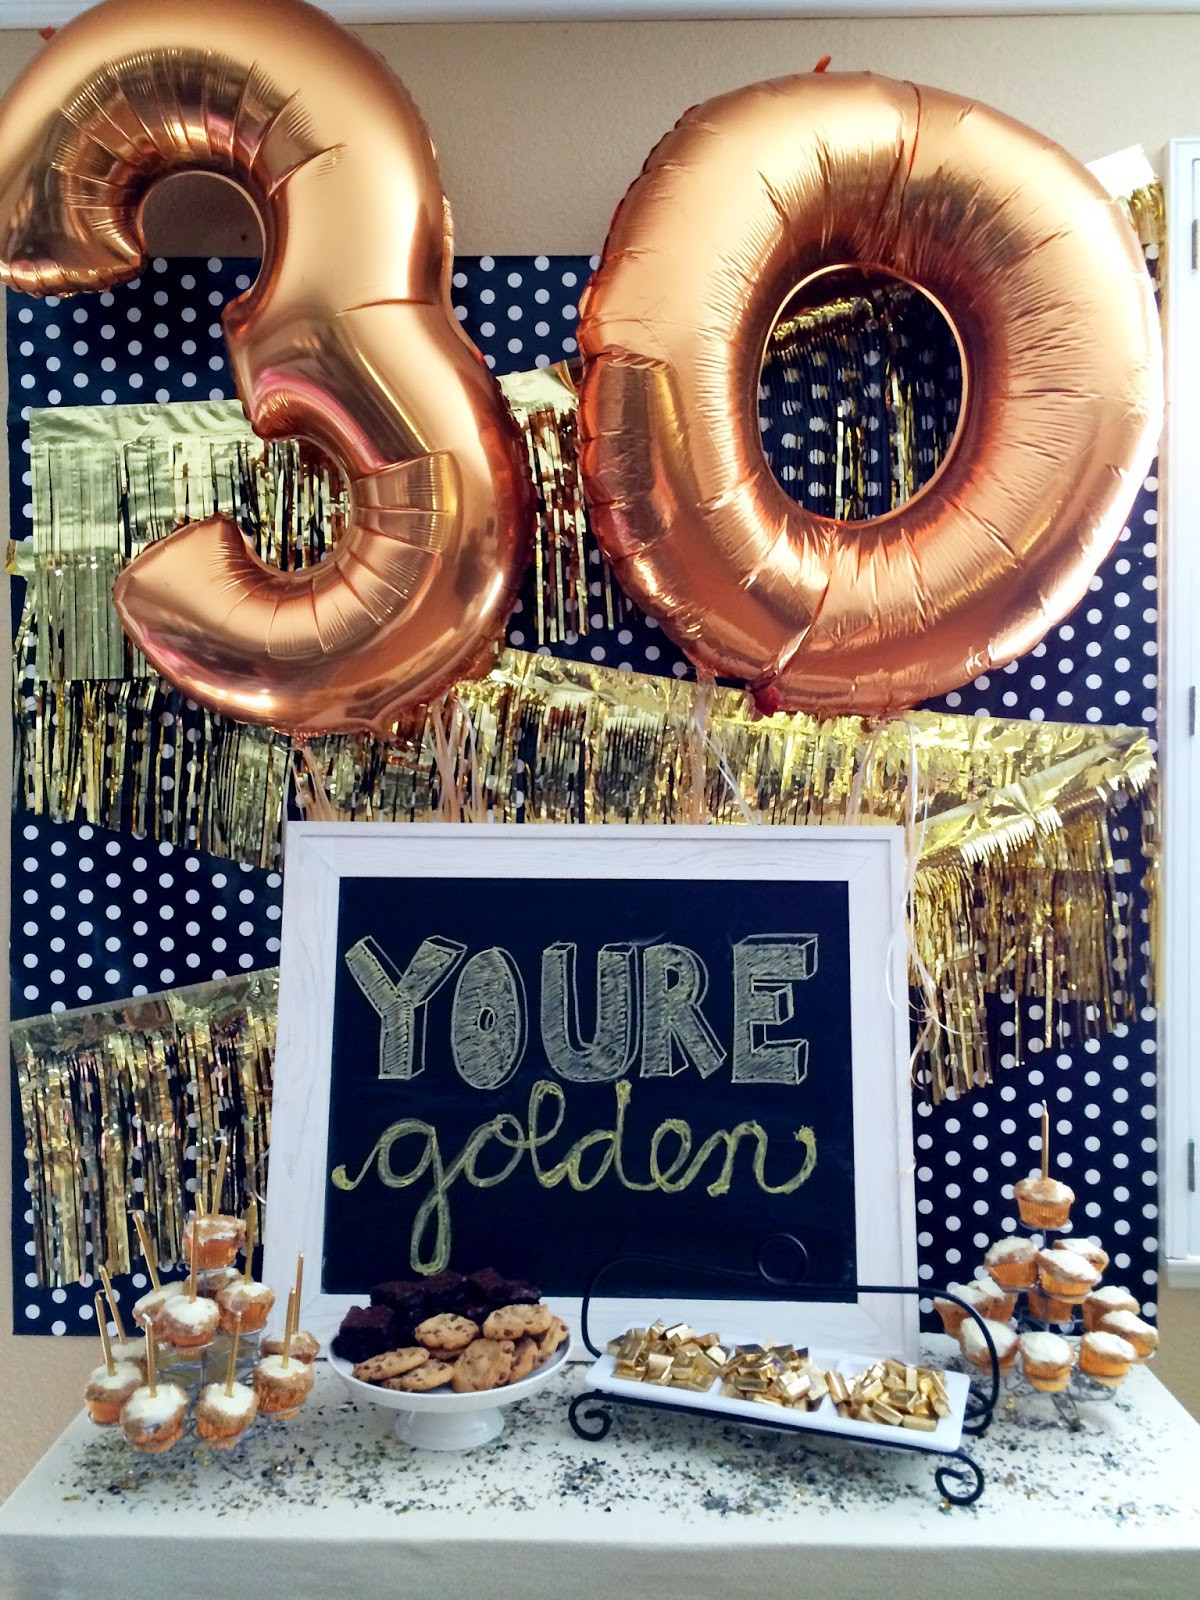 Best ideas about 30th Birthday Party Decorations . Save or Pin 7 Clever Themes for a Smashing 30th Birthday Party Now.